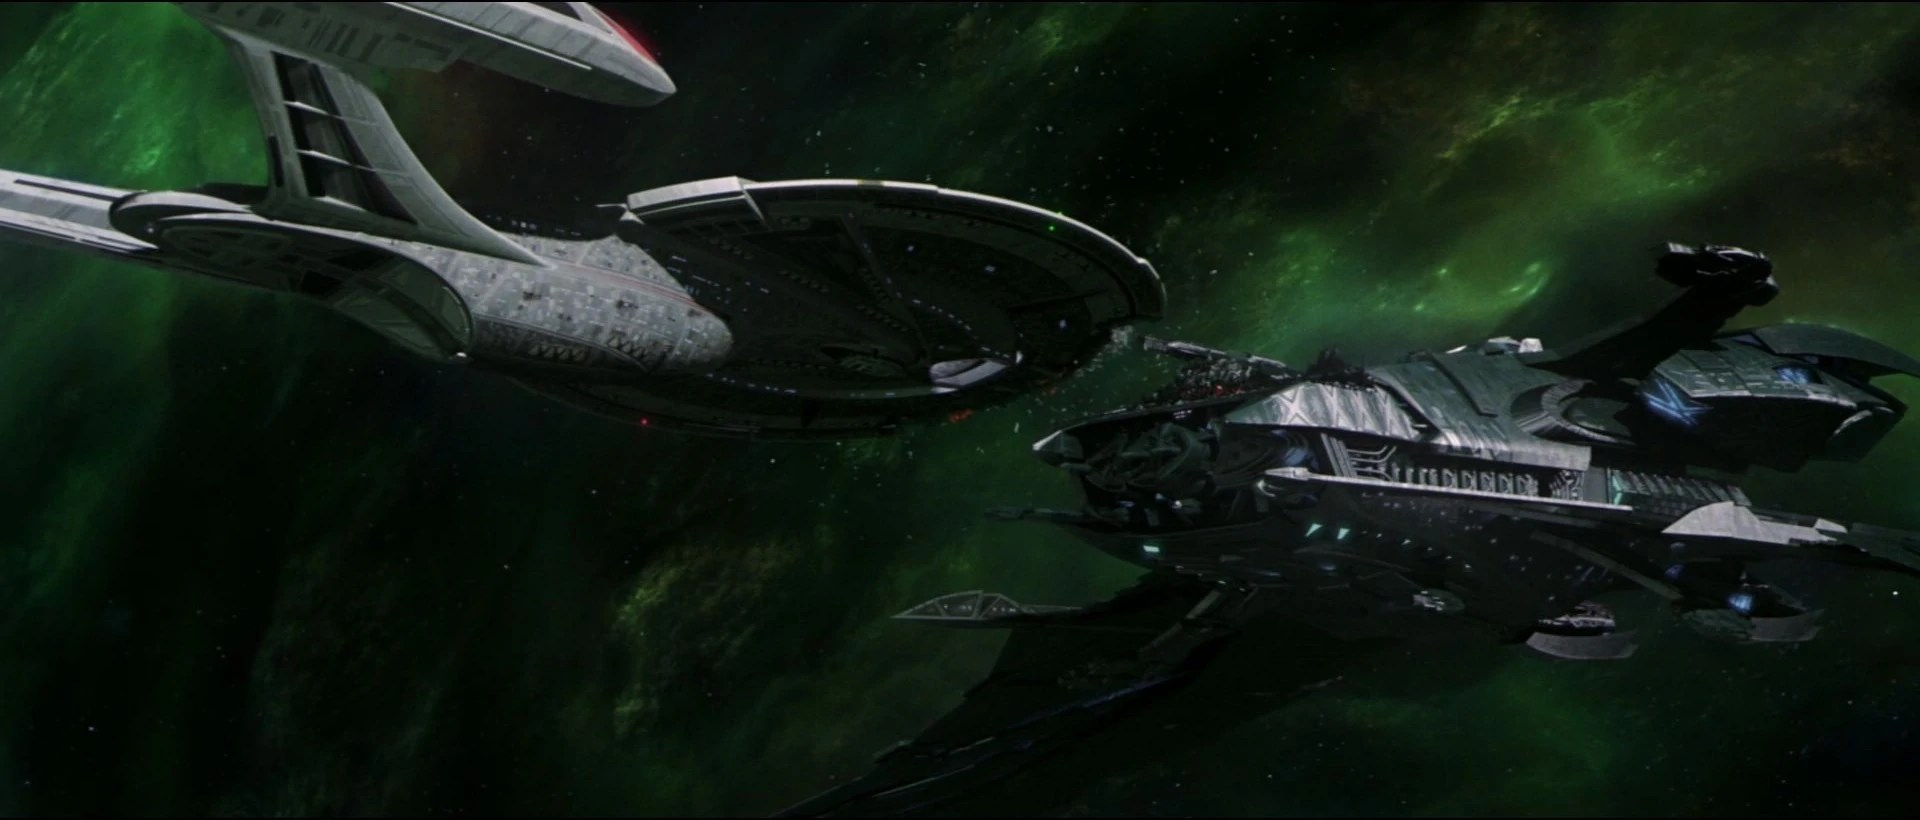 The Enterprise-E faces off with Shinzons Scimitar in Star Trek Nemesis